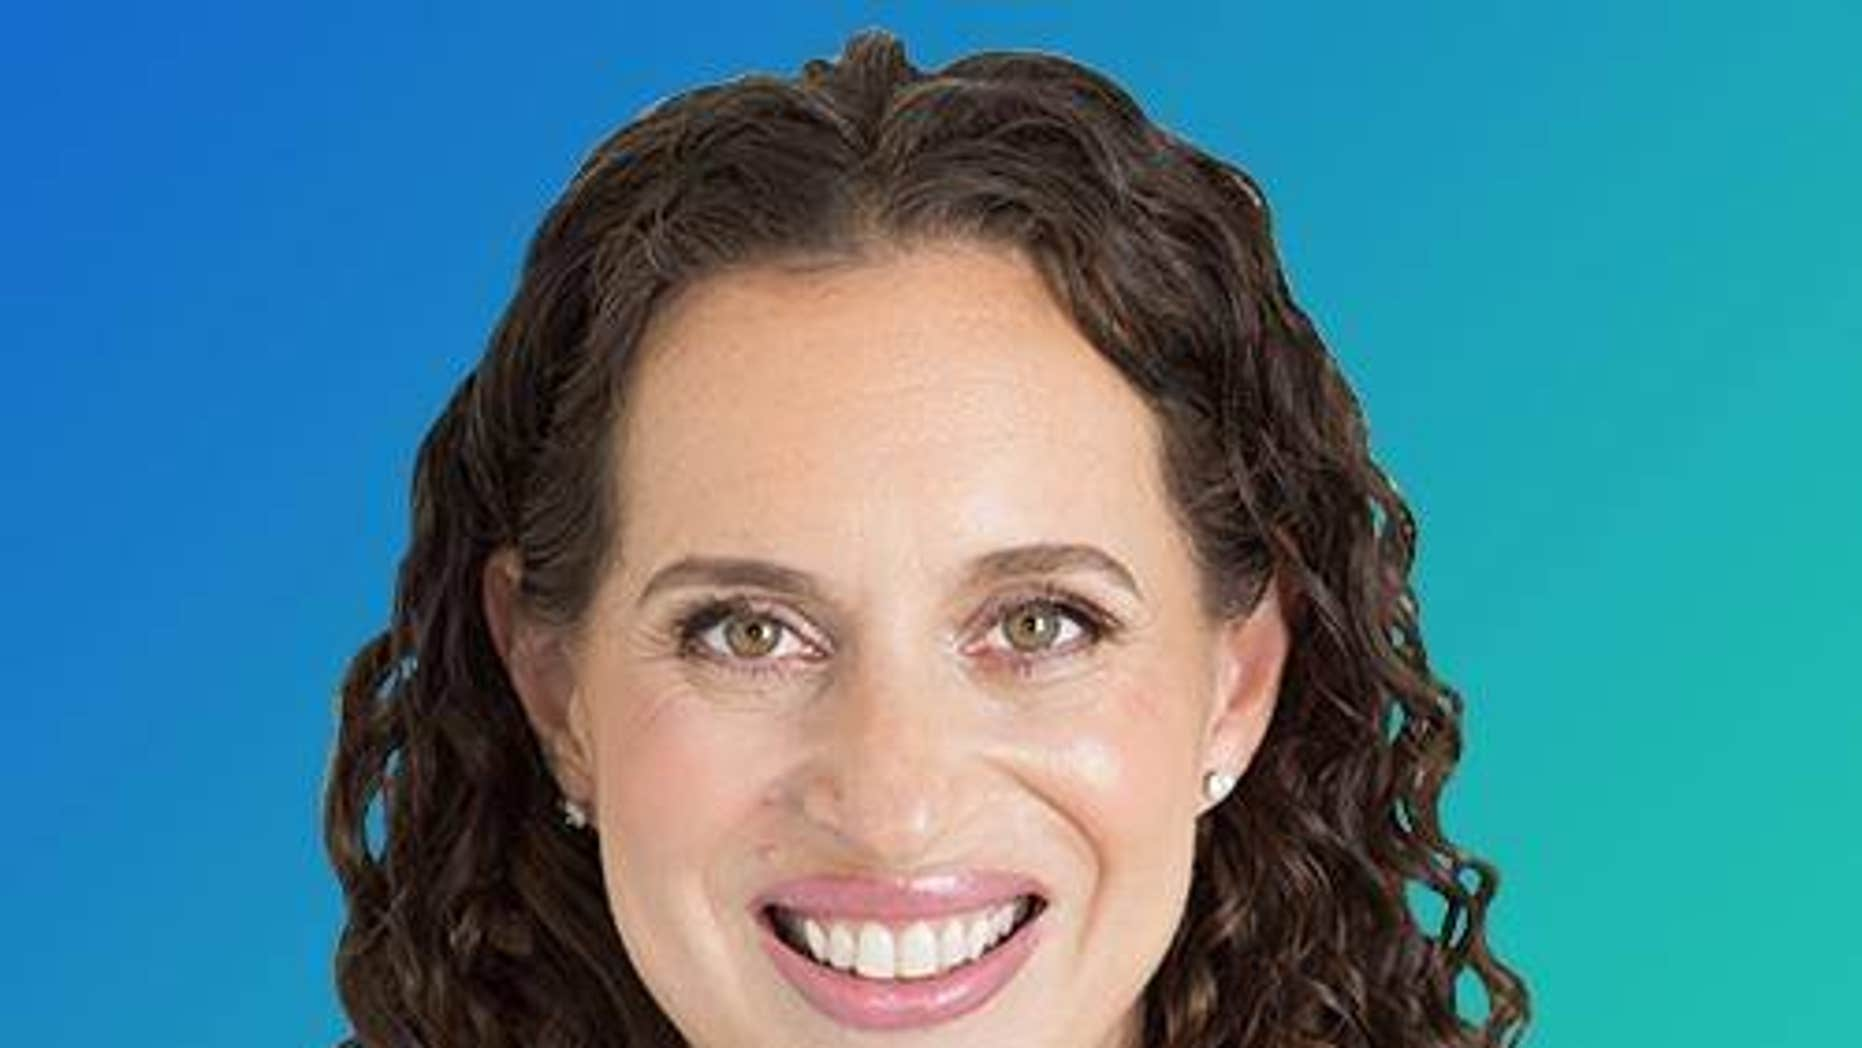 "Lauren Baer, a former State Department adviser in the Obama administration, is running for Congress in Florida. She once penned an article claiming the U.S. response to the Sept. 11, 2001 terrorist attacks was a ""moment of hypocrisy."""